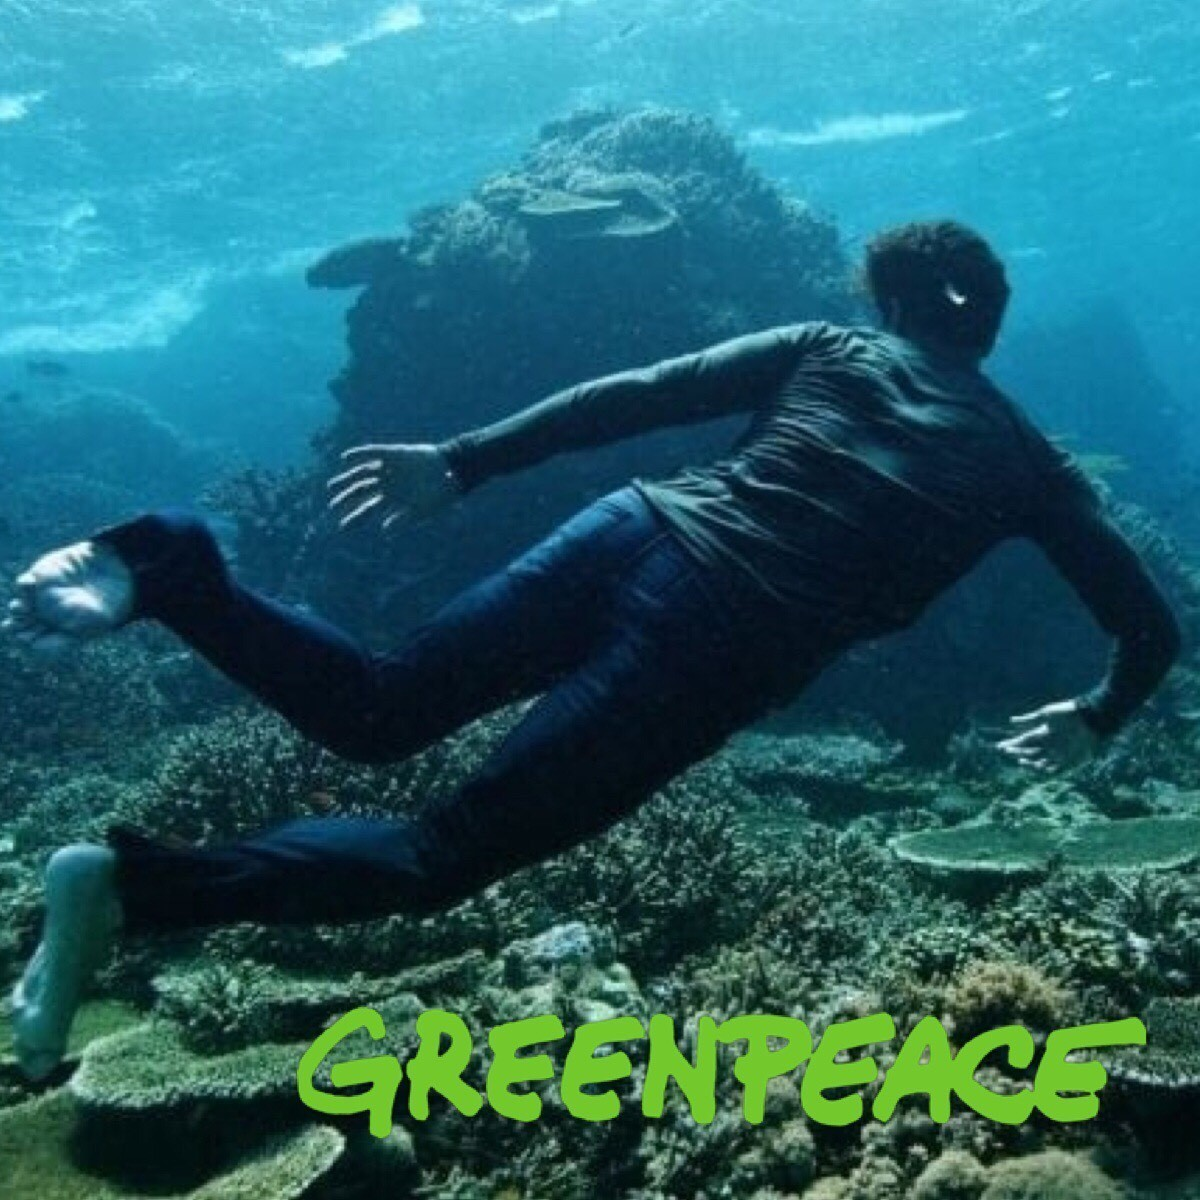 Articlehome novo amour greenpeace birthplace interview